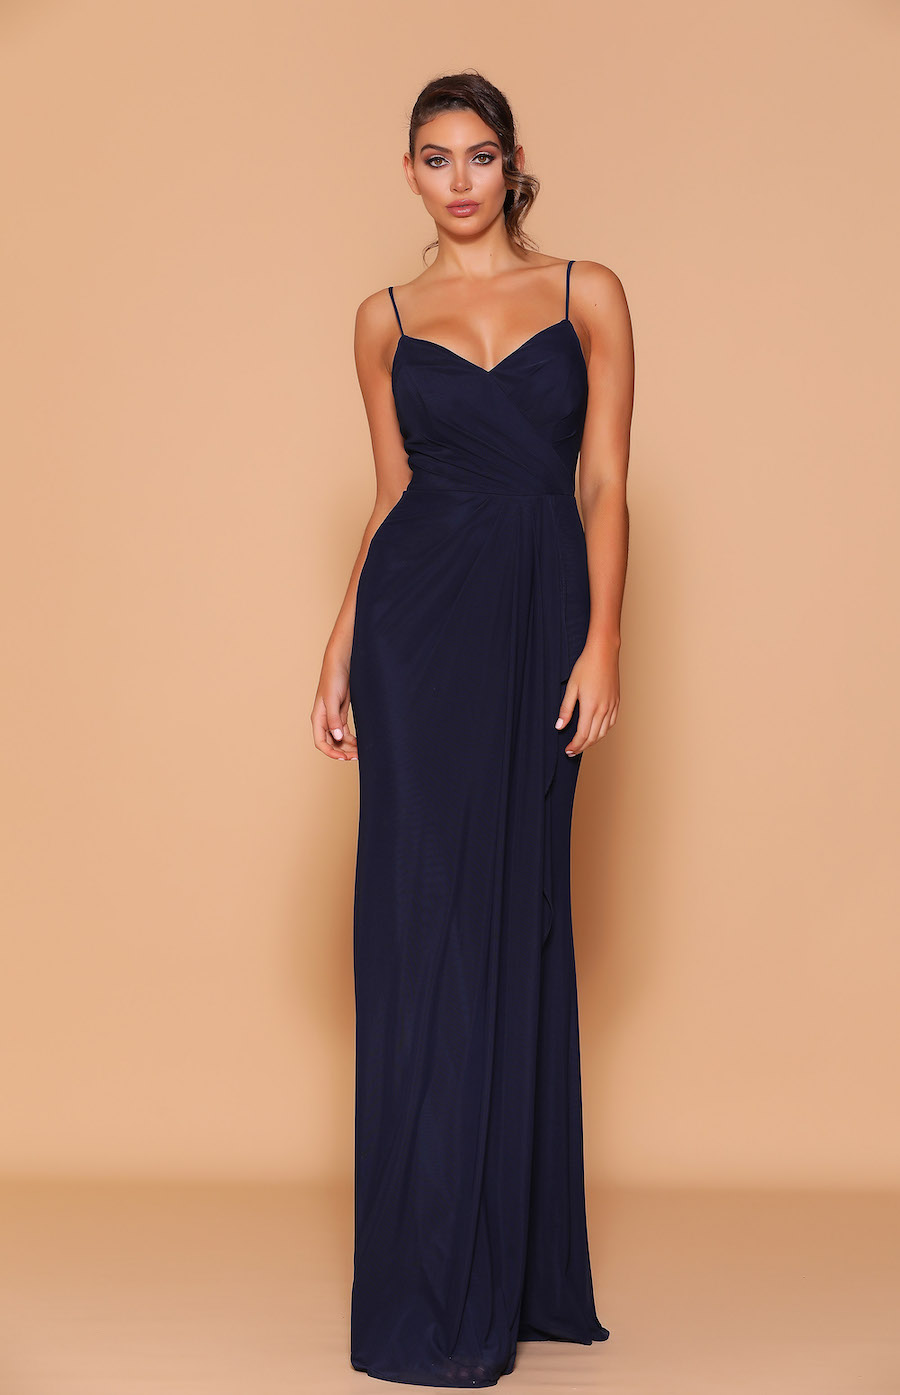 spaghetti strap v-neck rouched full length gown.